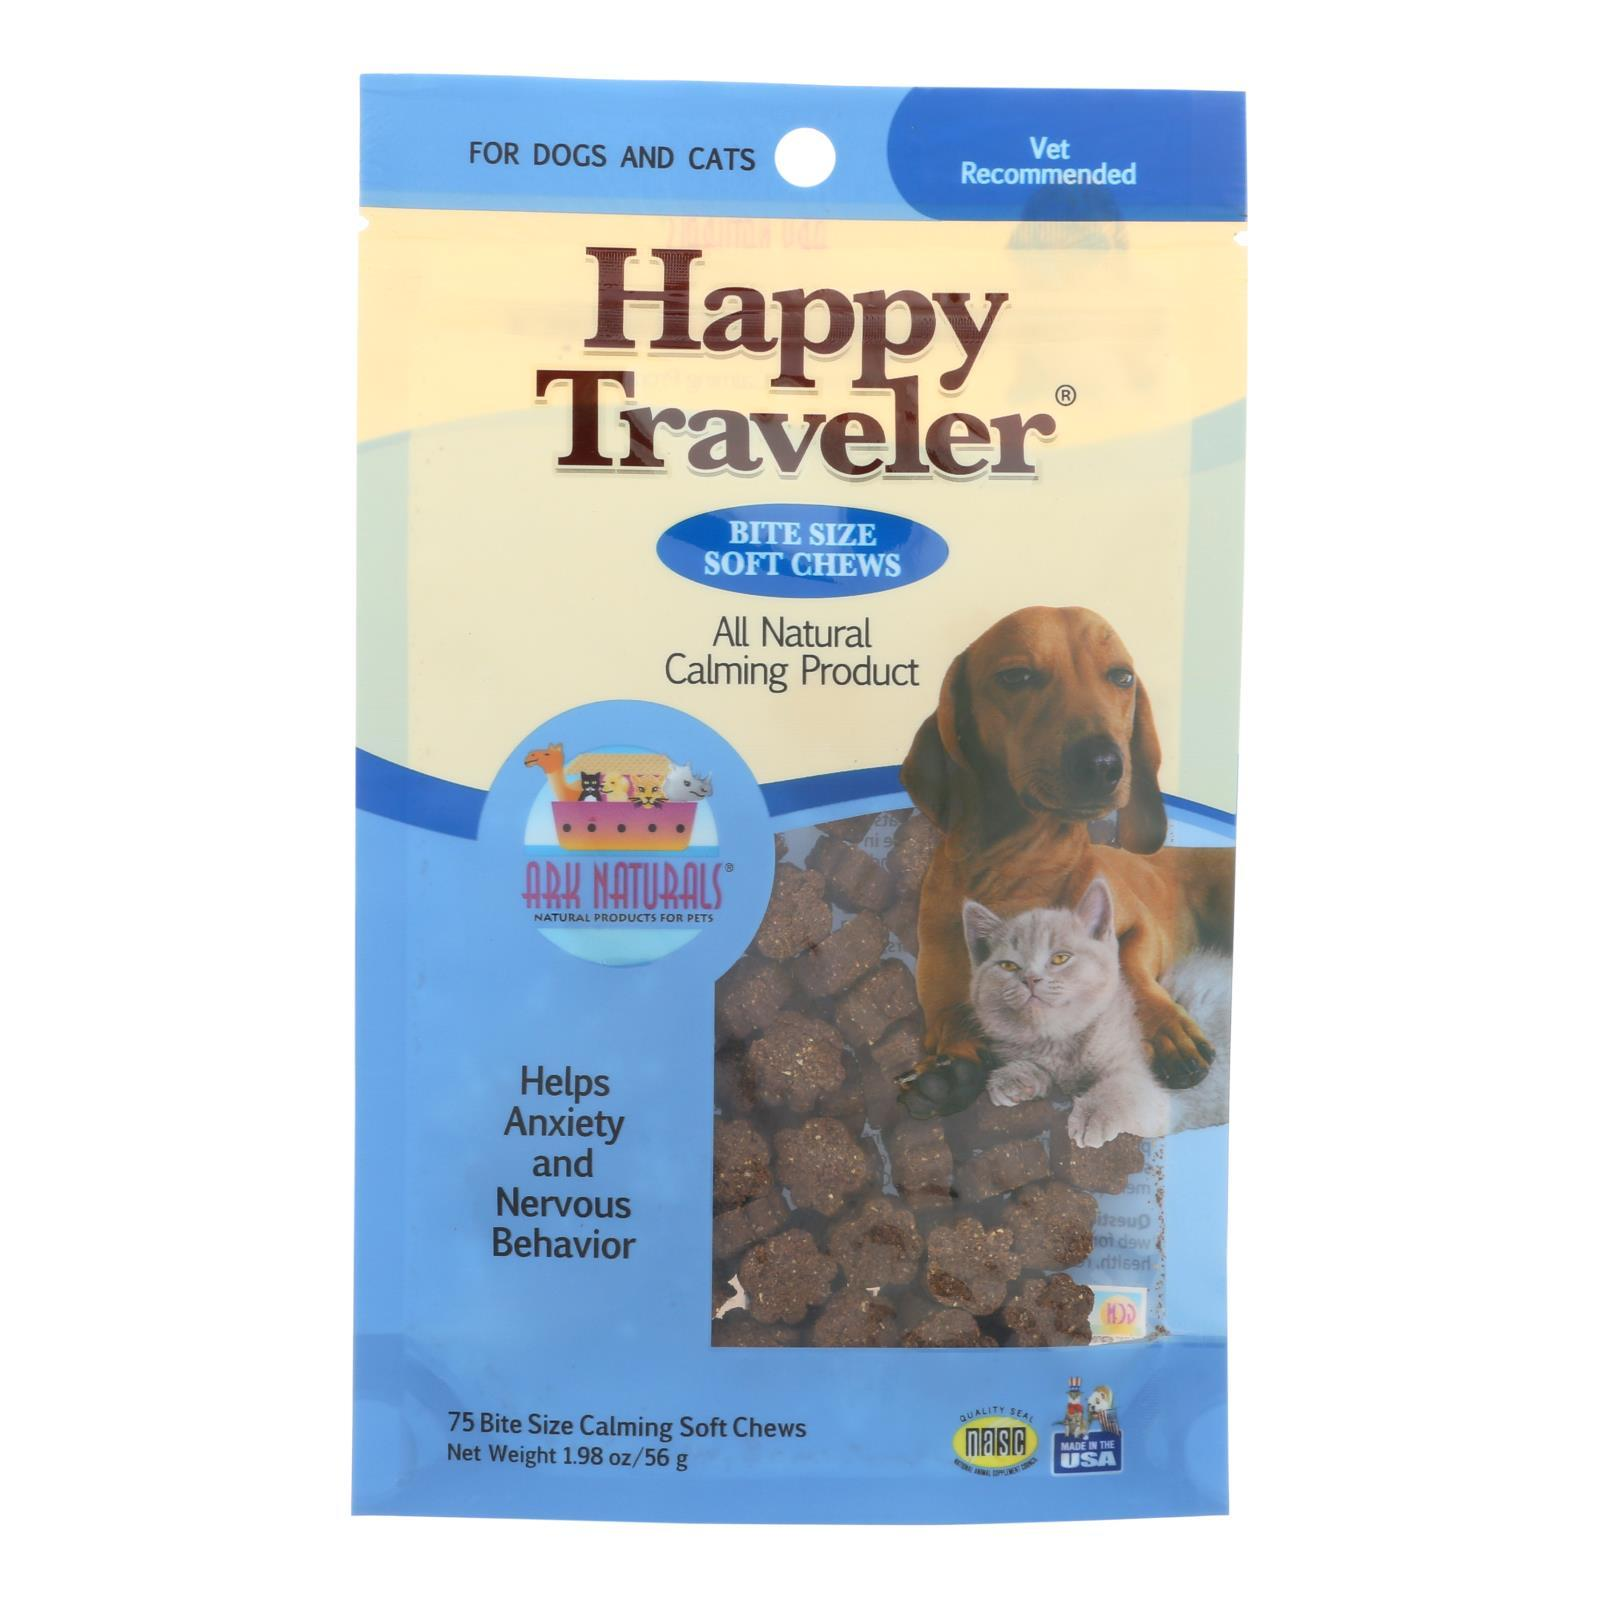 Ark Naturals Happy Traveler For Dogs And Cats - 75 Soft Chews - BeeGreen